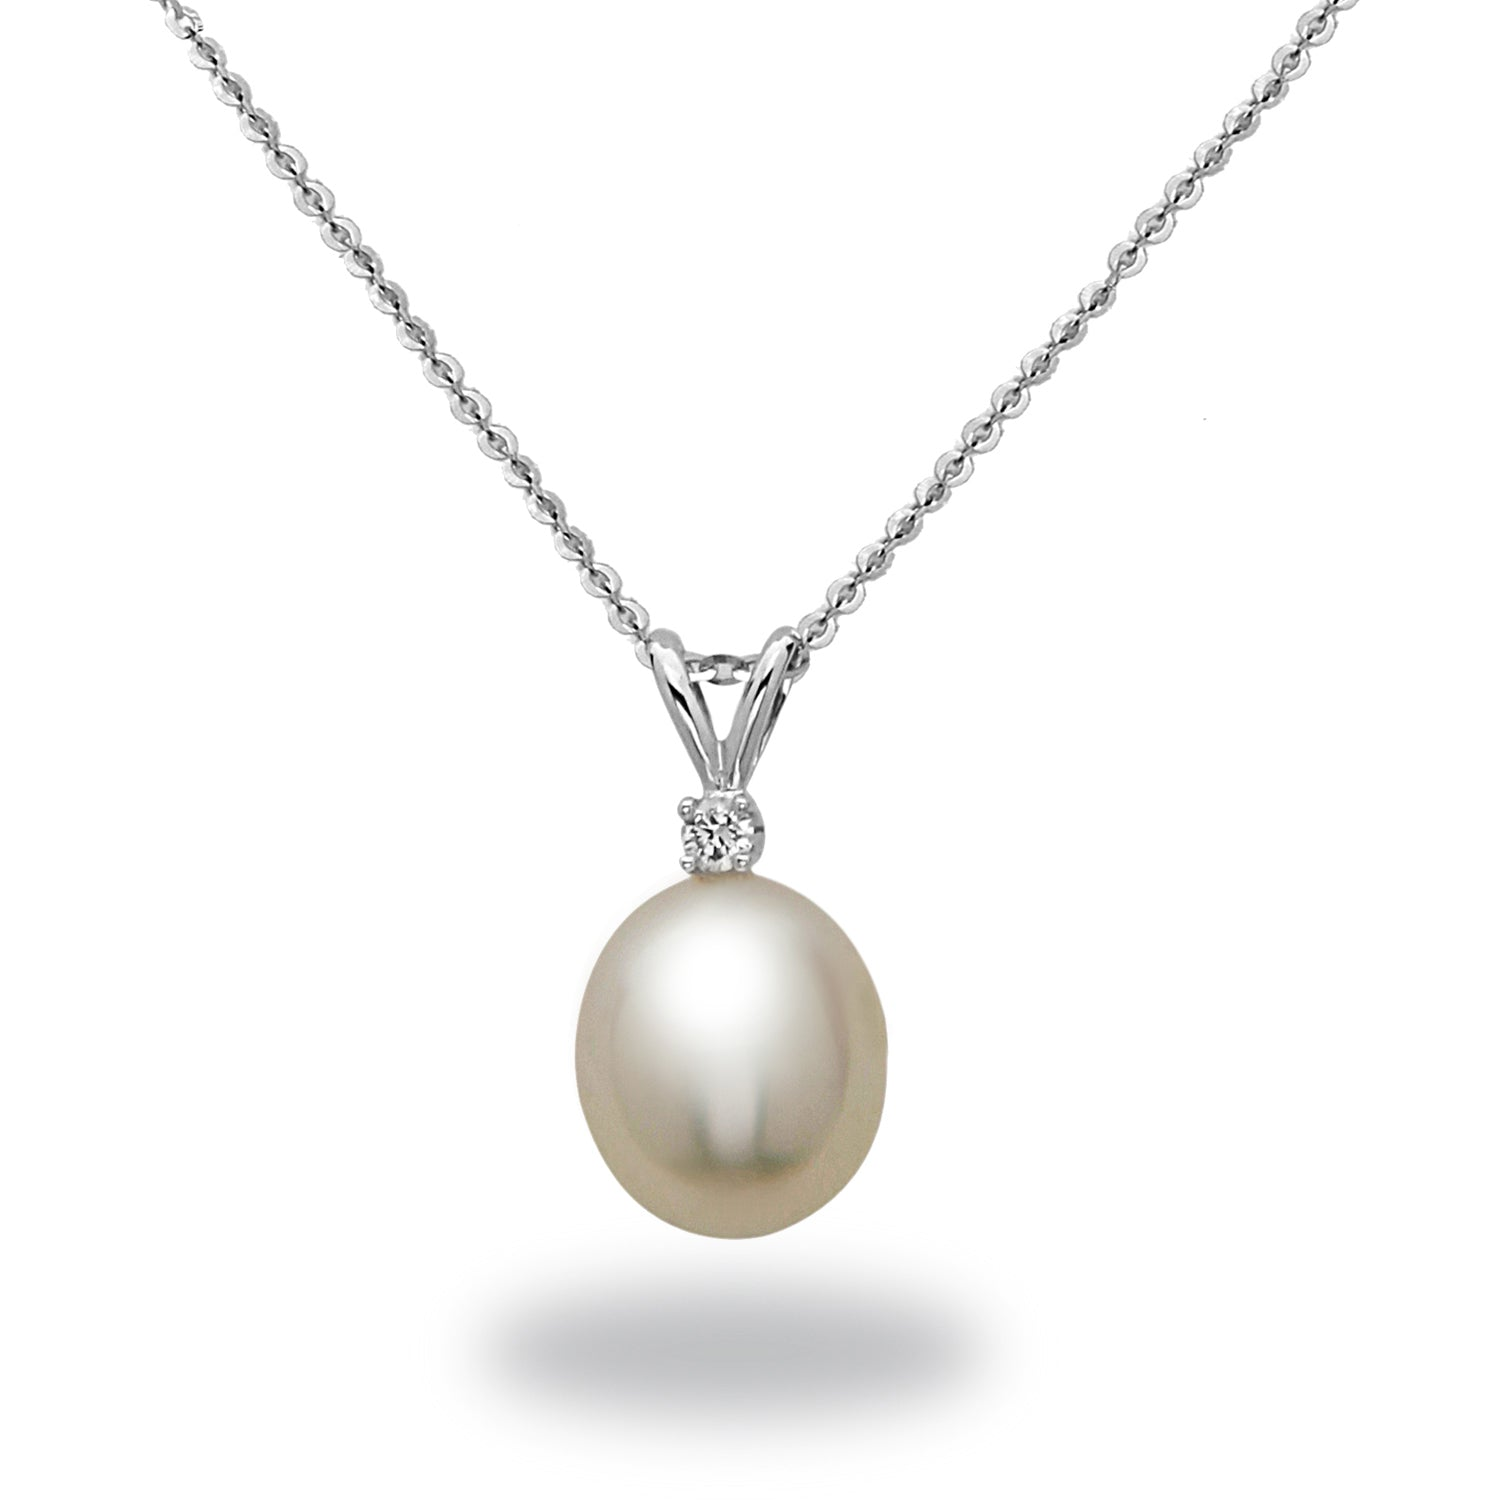 9-10mm White South Sea Cultured Pearl and Diamond Pendant